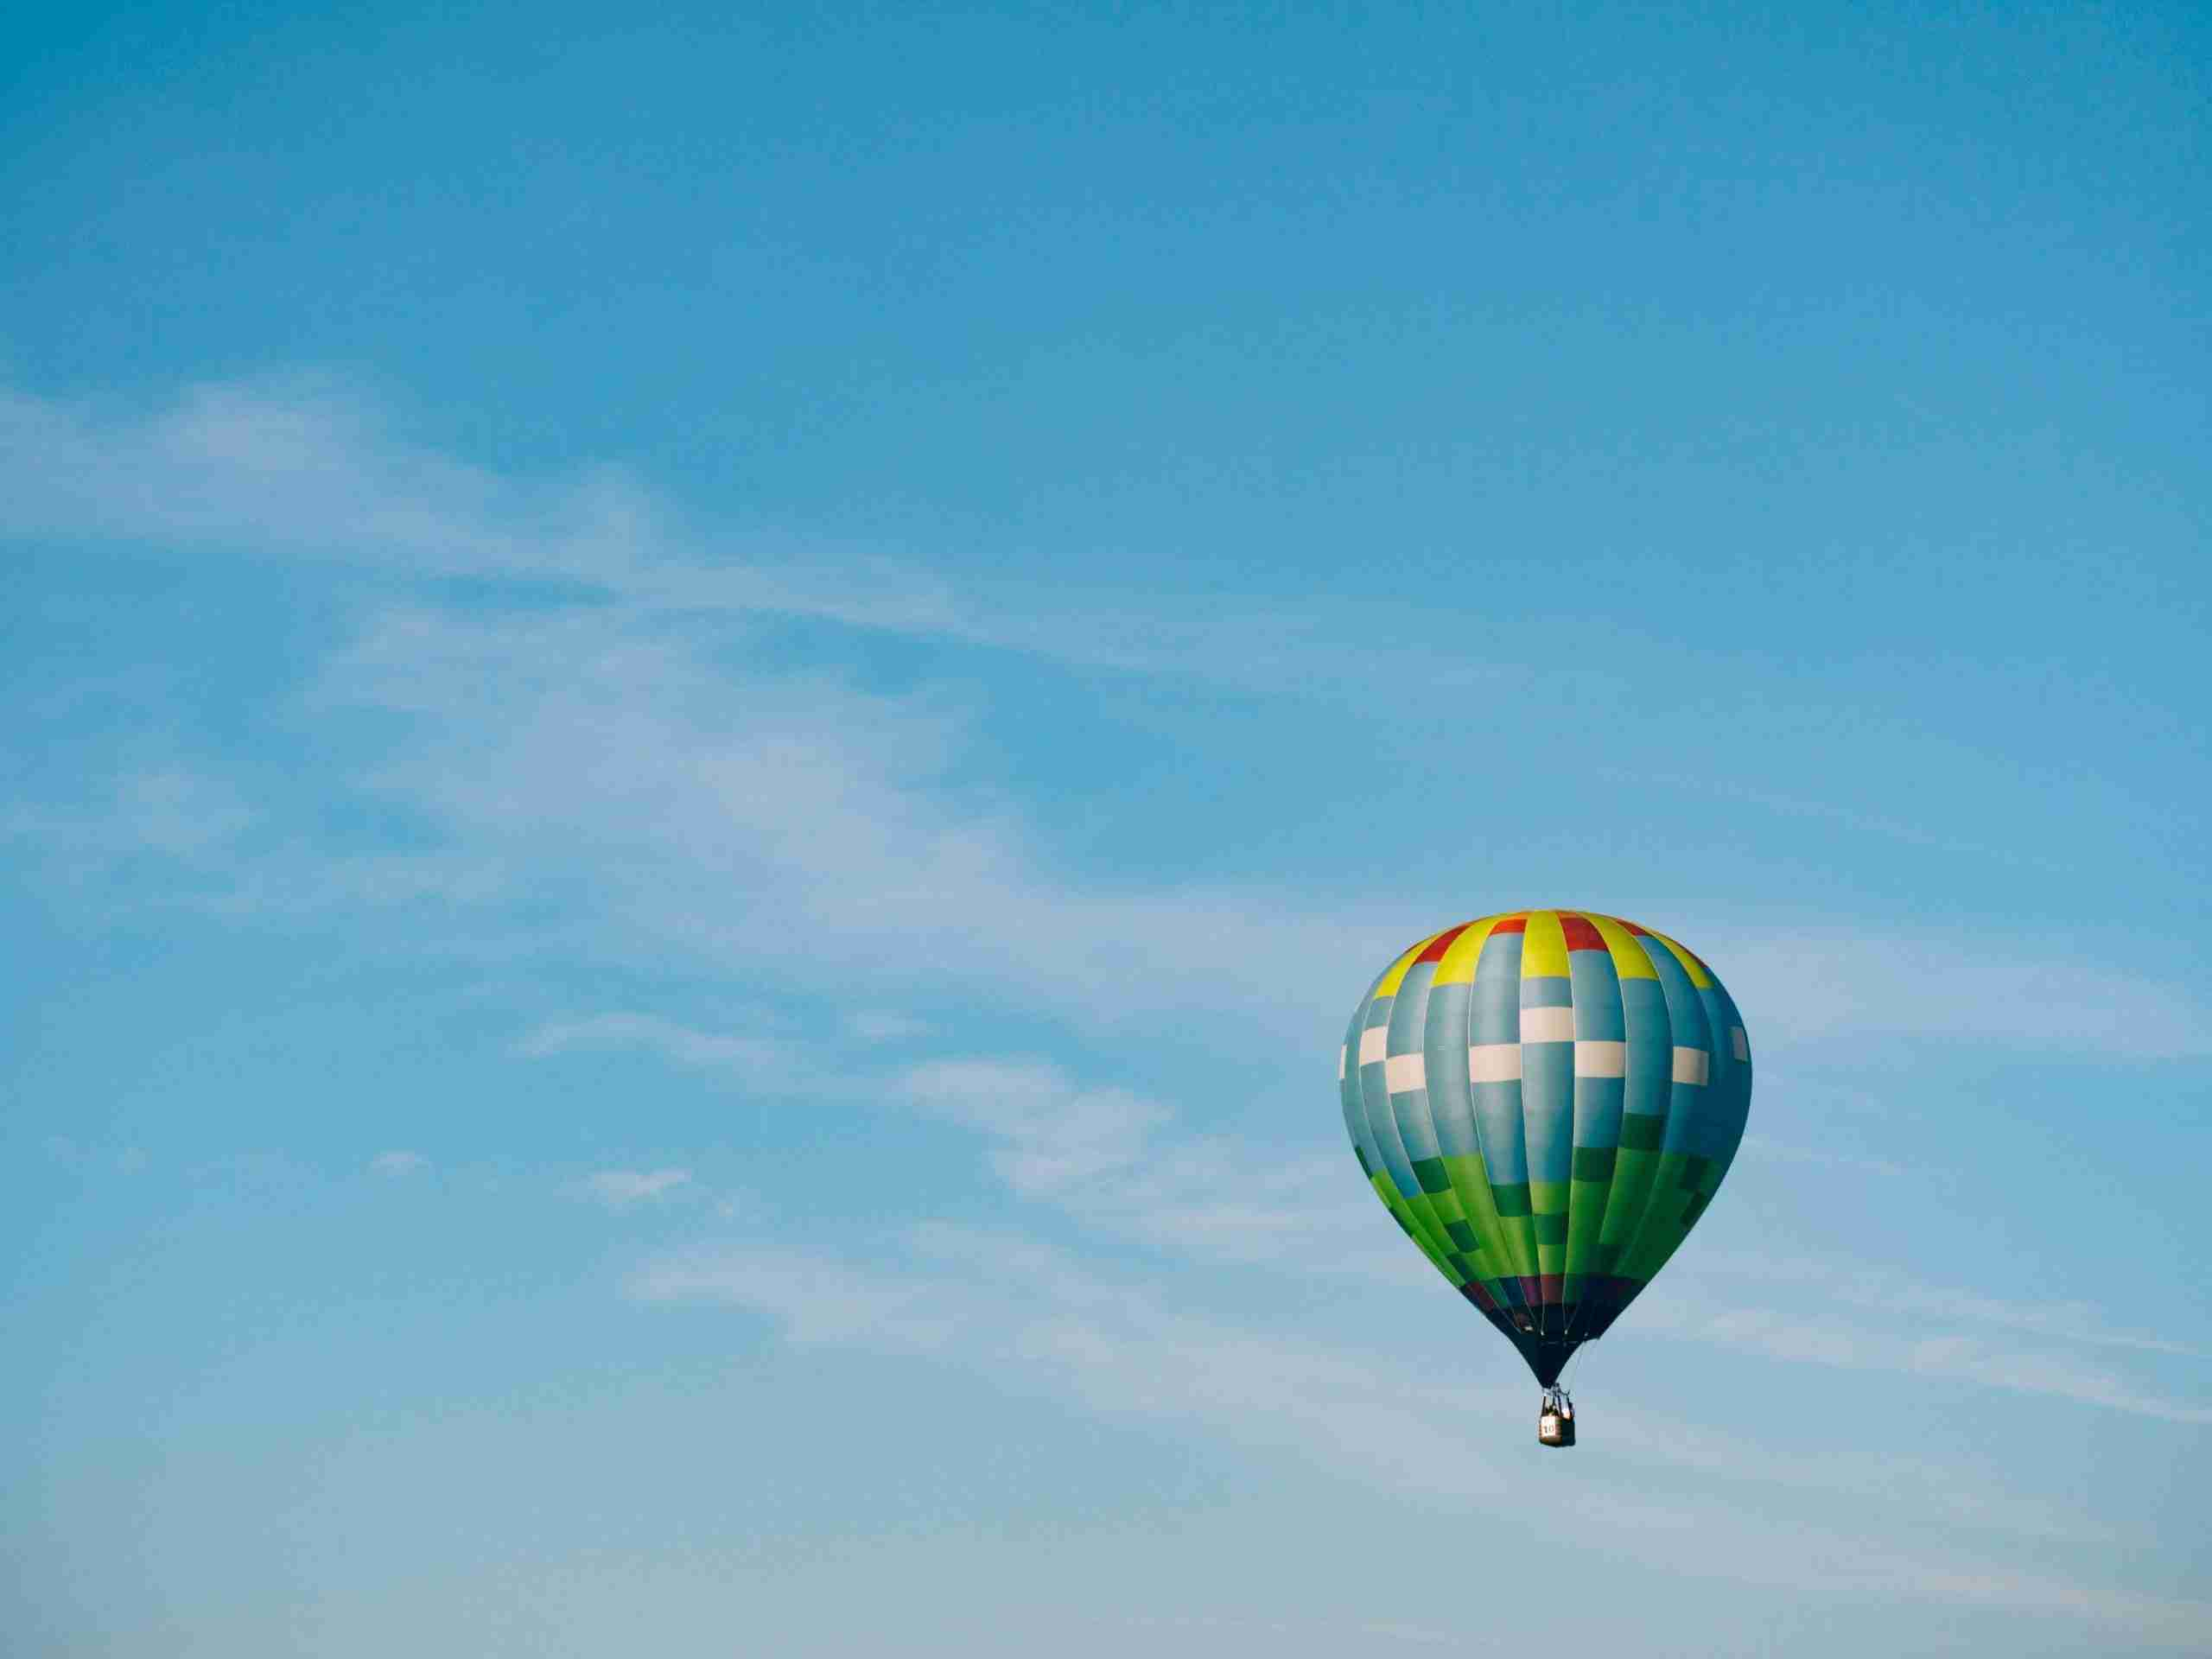 A hot air balloon rising into the sky, representing how with customer experience consulting your organisation can also rise in terms of customer experience.